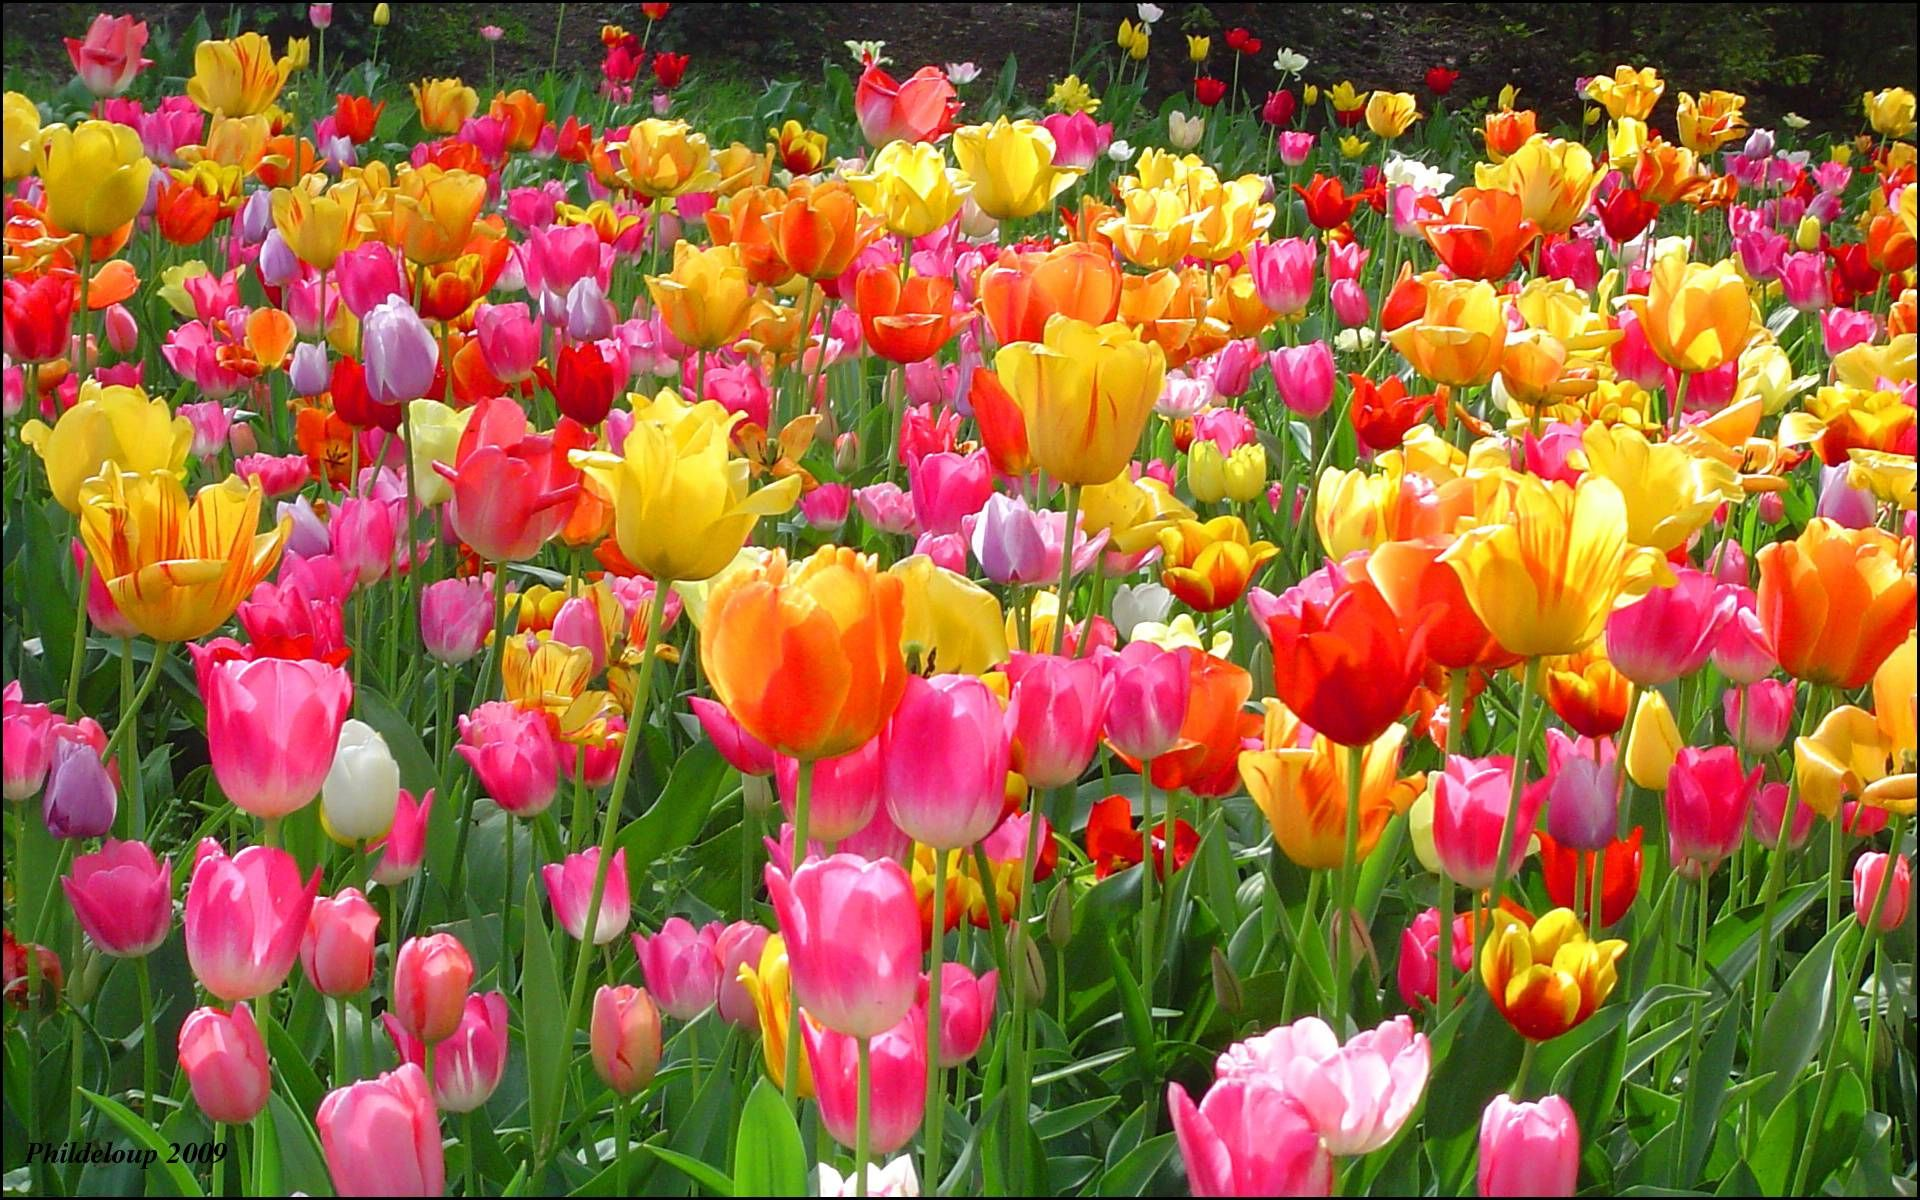 Tulip Wallpapers Wallpaper Cave Spring Flowers Background Spring Tulips Flowers Nature